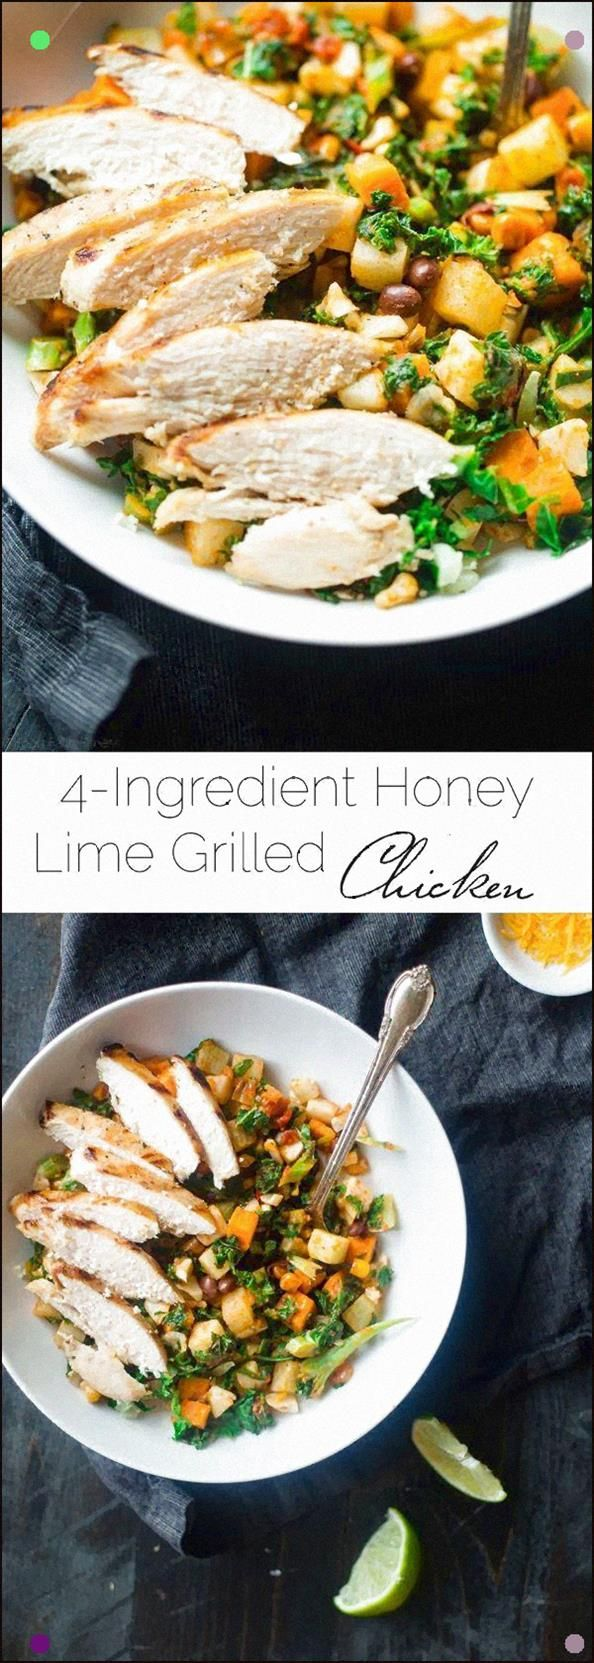 4 Ingredient Honey Lime Grilled Chicken - This Easy Honey Lime Chicken Only Uses 3 Ingredients And Is Ready In 15 Minutes It's A Healthy, Protein Packed And Gluten Free Addition To Your Next Dinner Foodfaithfit #honeylimechicken